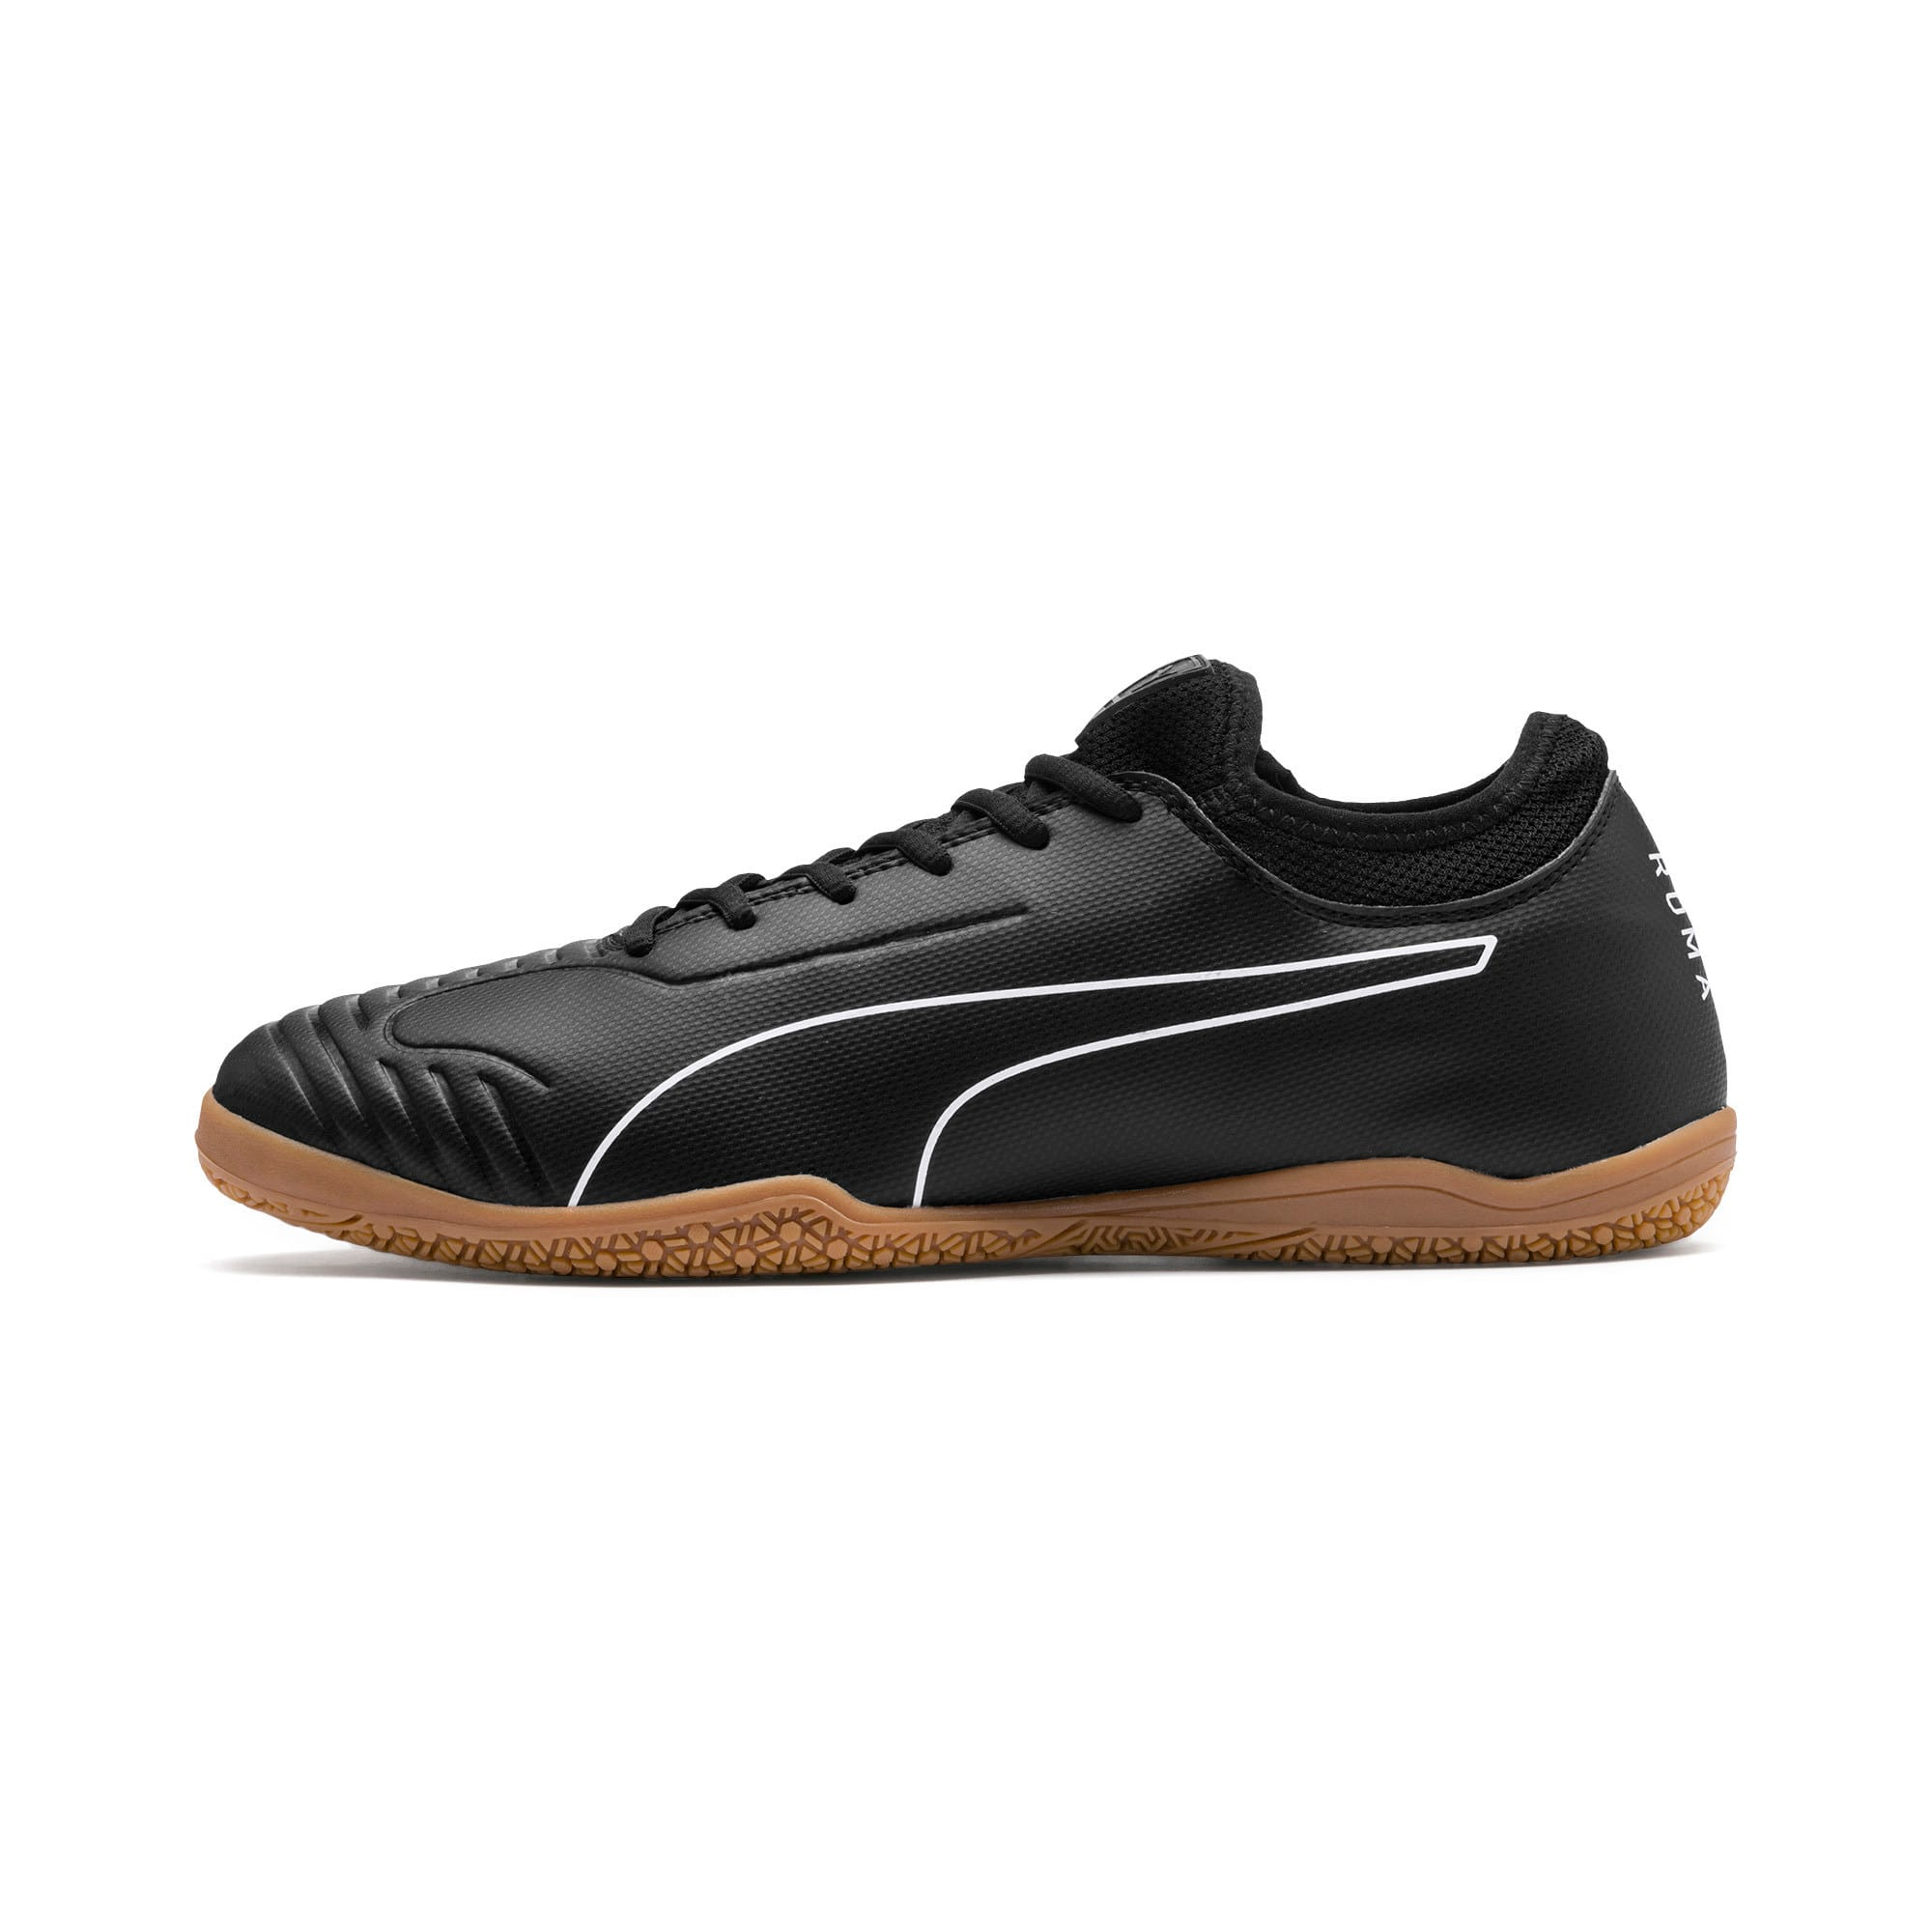 Thumbnail 1 of 365 Sala 2 Men's Soccer Shoes, Puma Black-Puma White-Gum, medium